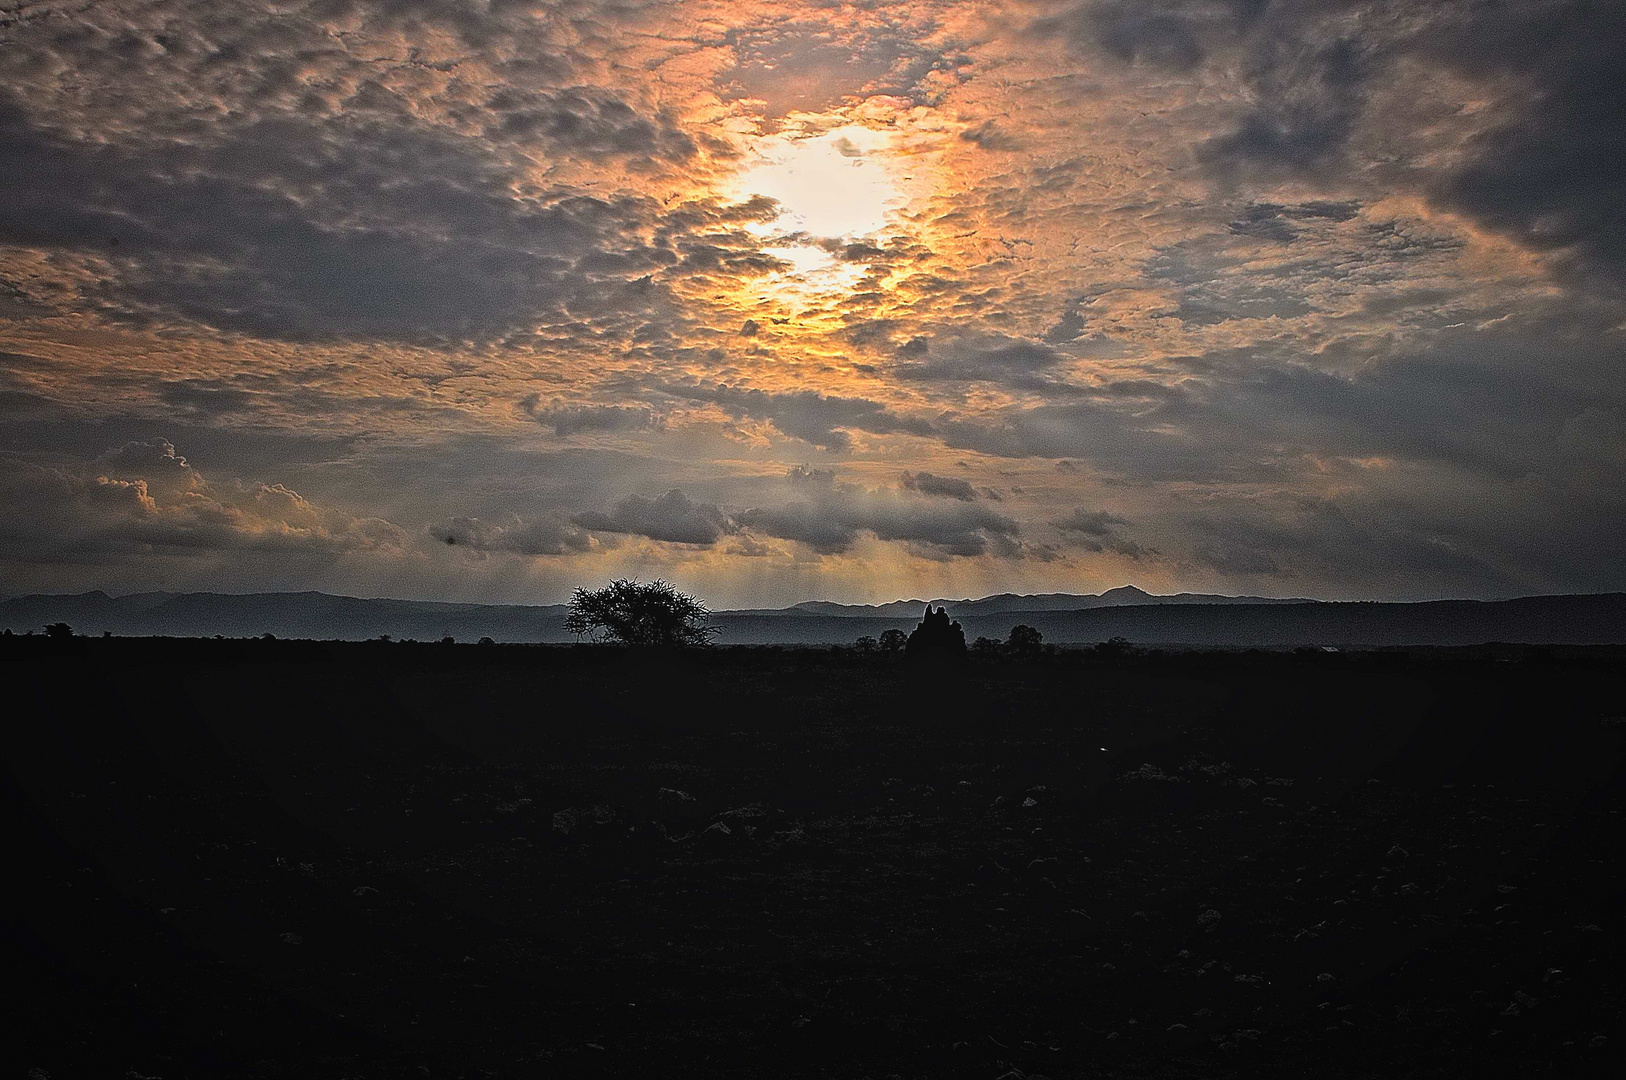 Cloudy Sunset in Africa